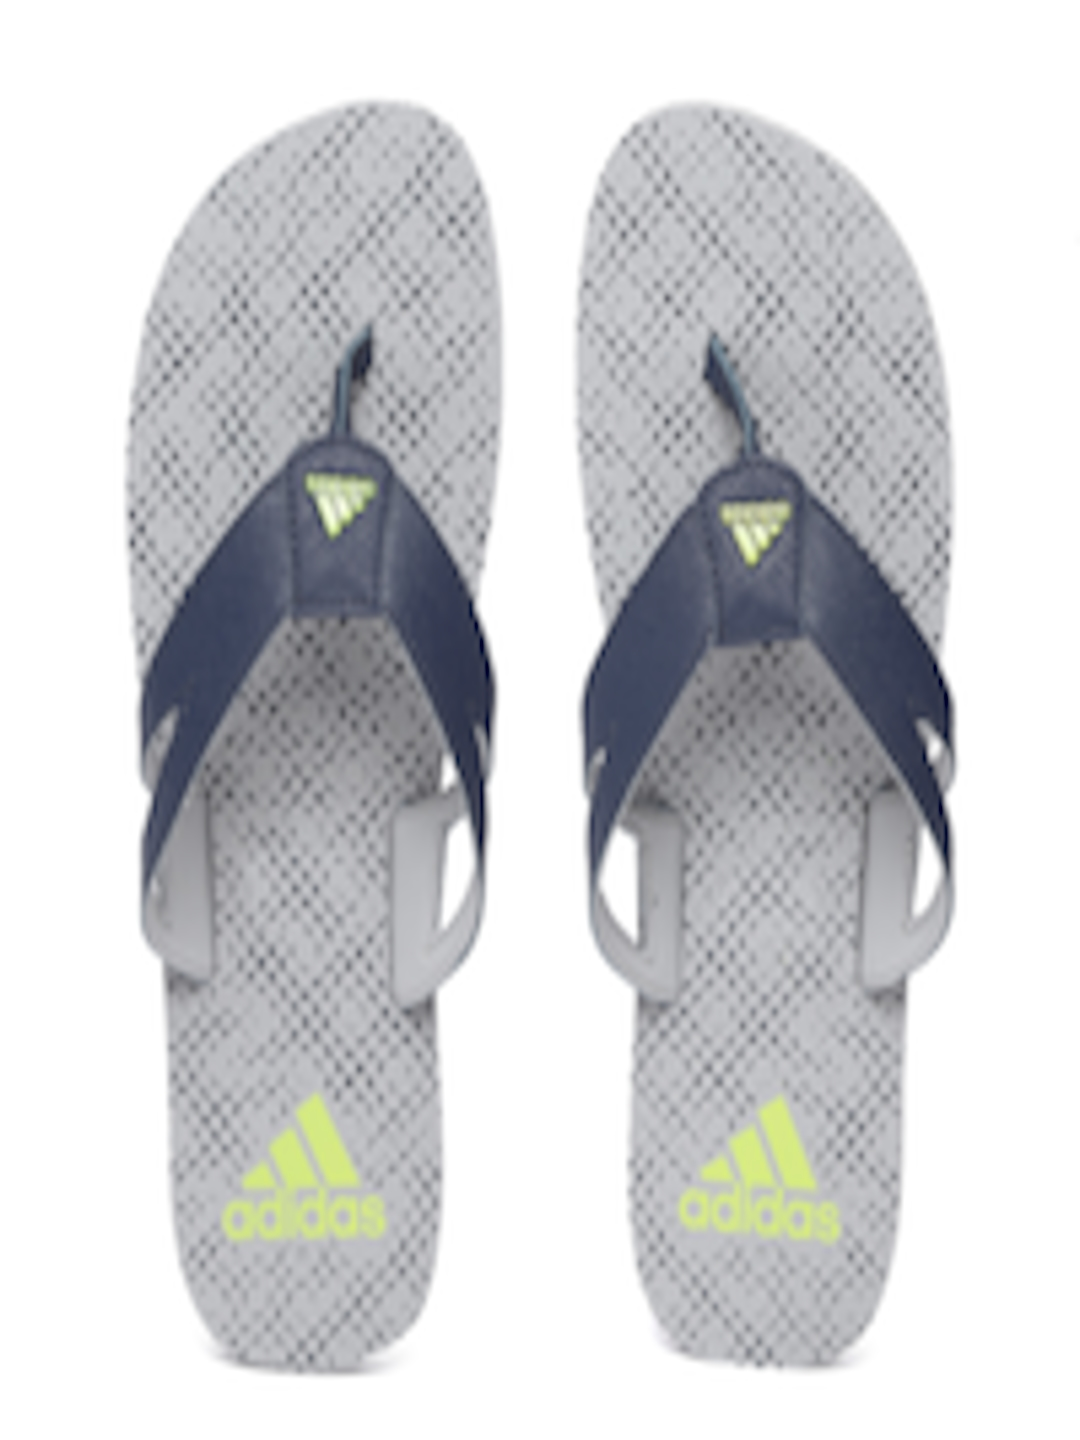 a54e88b1109d Buy ADIDAS Men Navy Blue   Grey OZOR Printed Thong Flip Flops - Flip ...